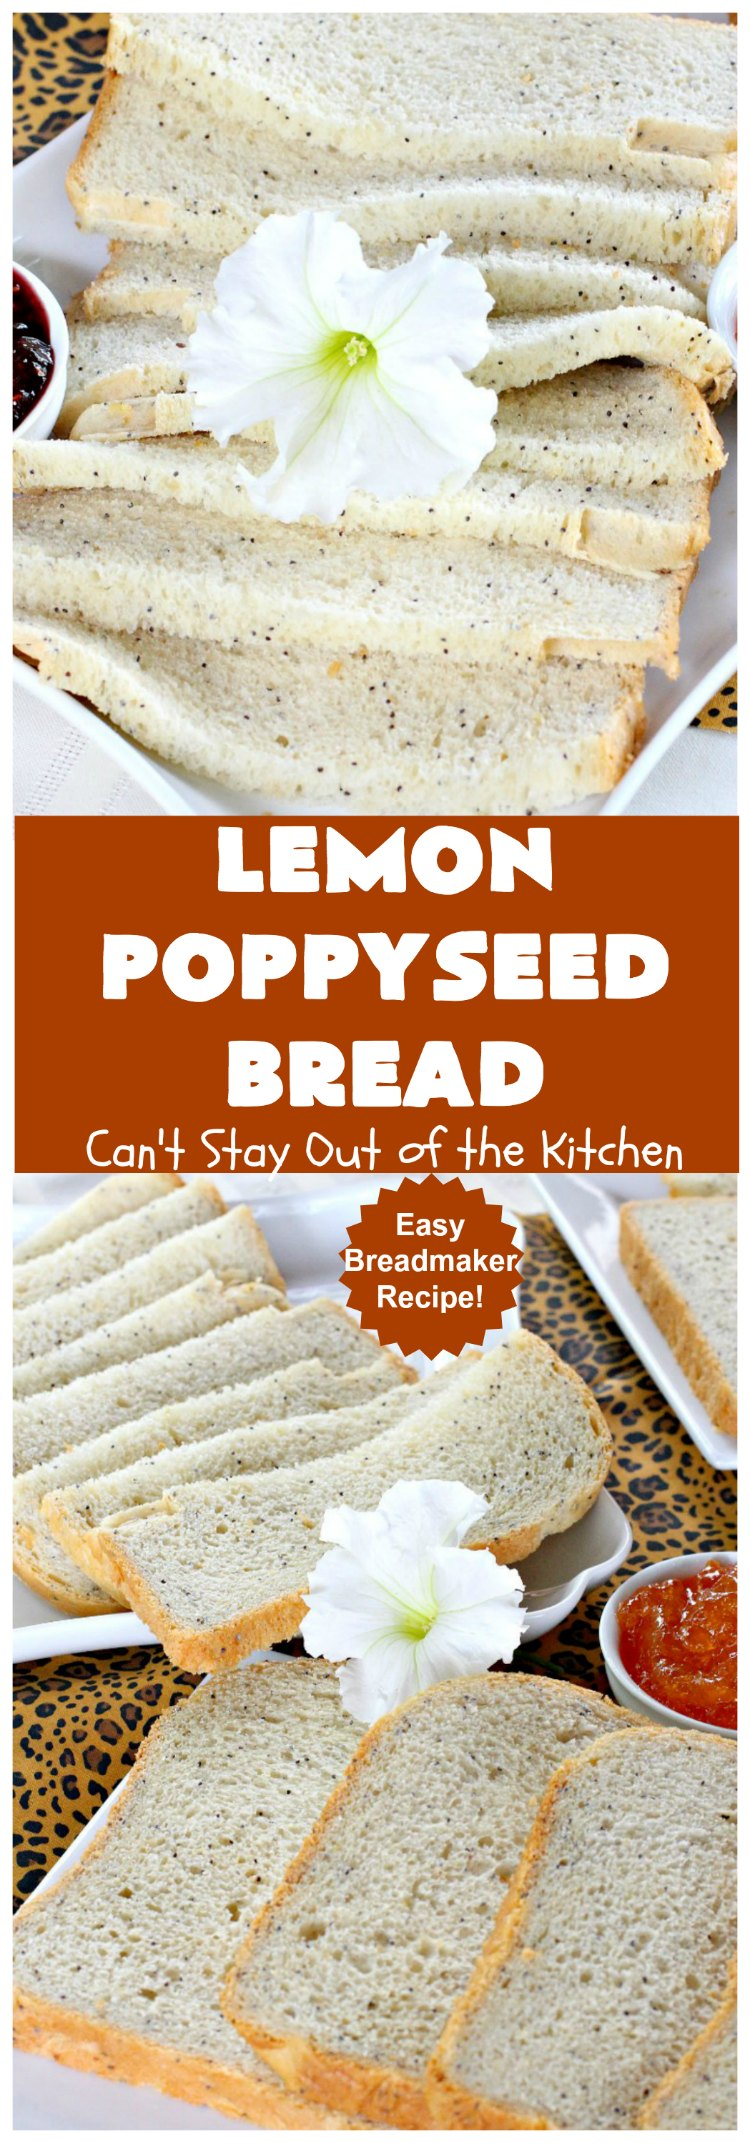 Lemon Poppyseed Bread   Can't Stay Out of the Kitchen